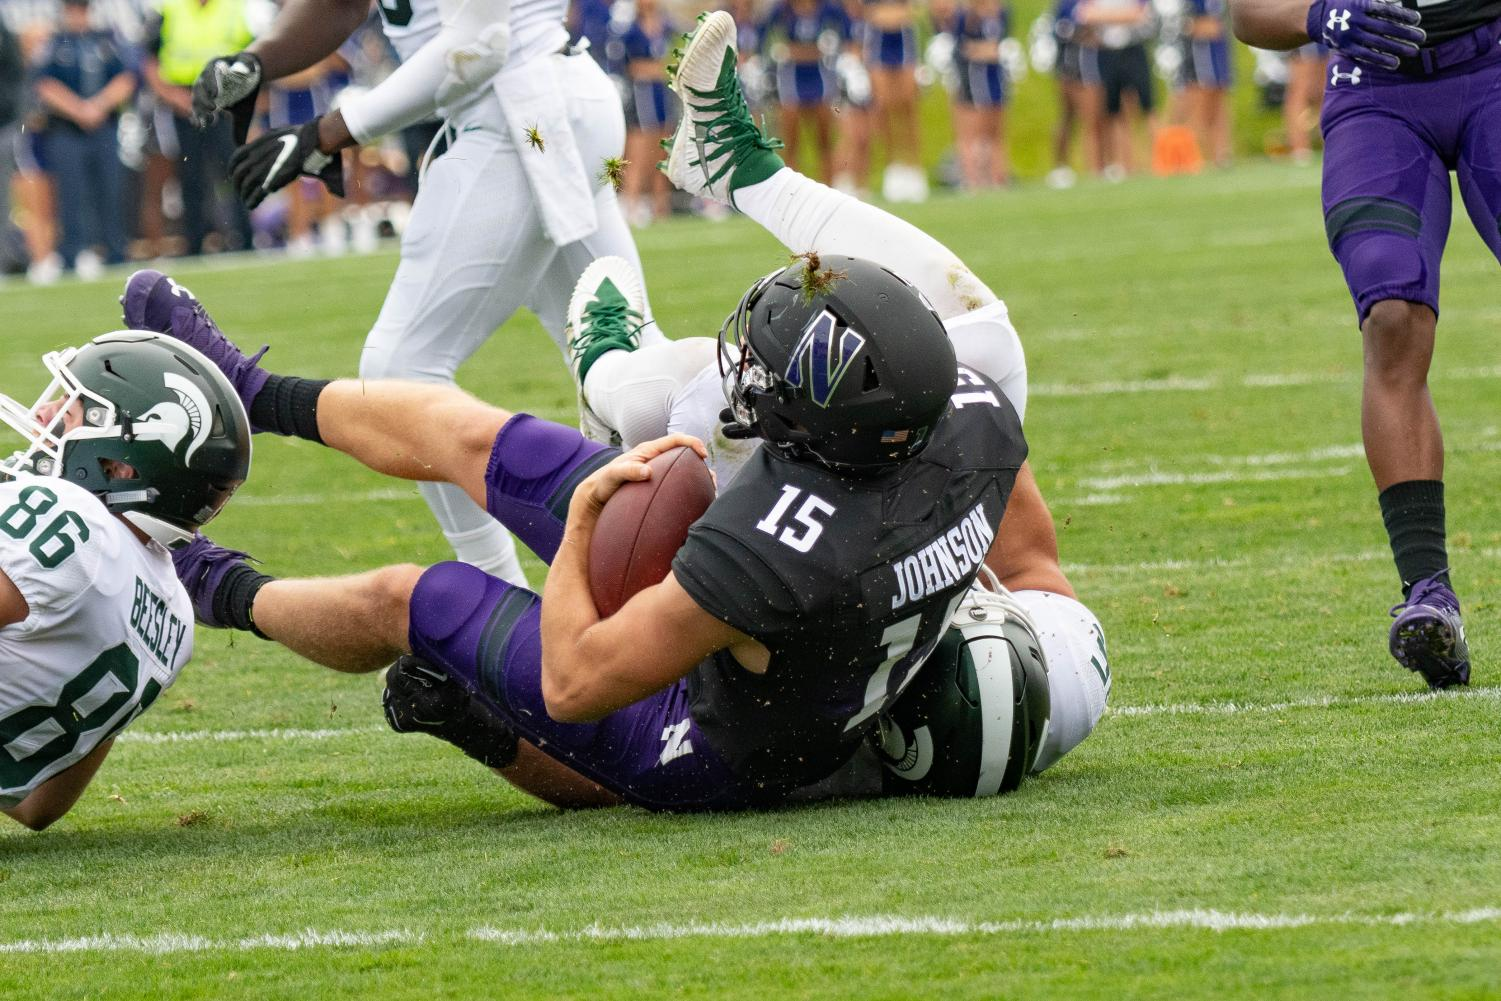 Hunter Johnson gets tackled in the backfield. The Northwestern offense struggled mightily in a loss to Michigan State.